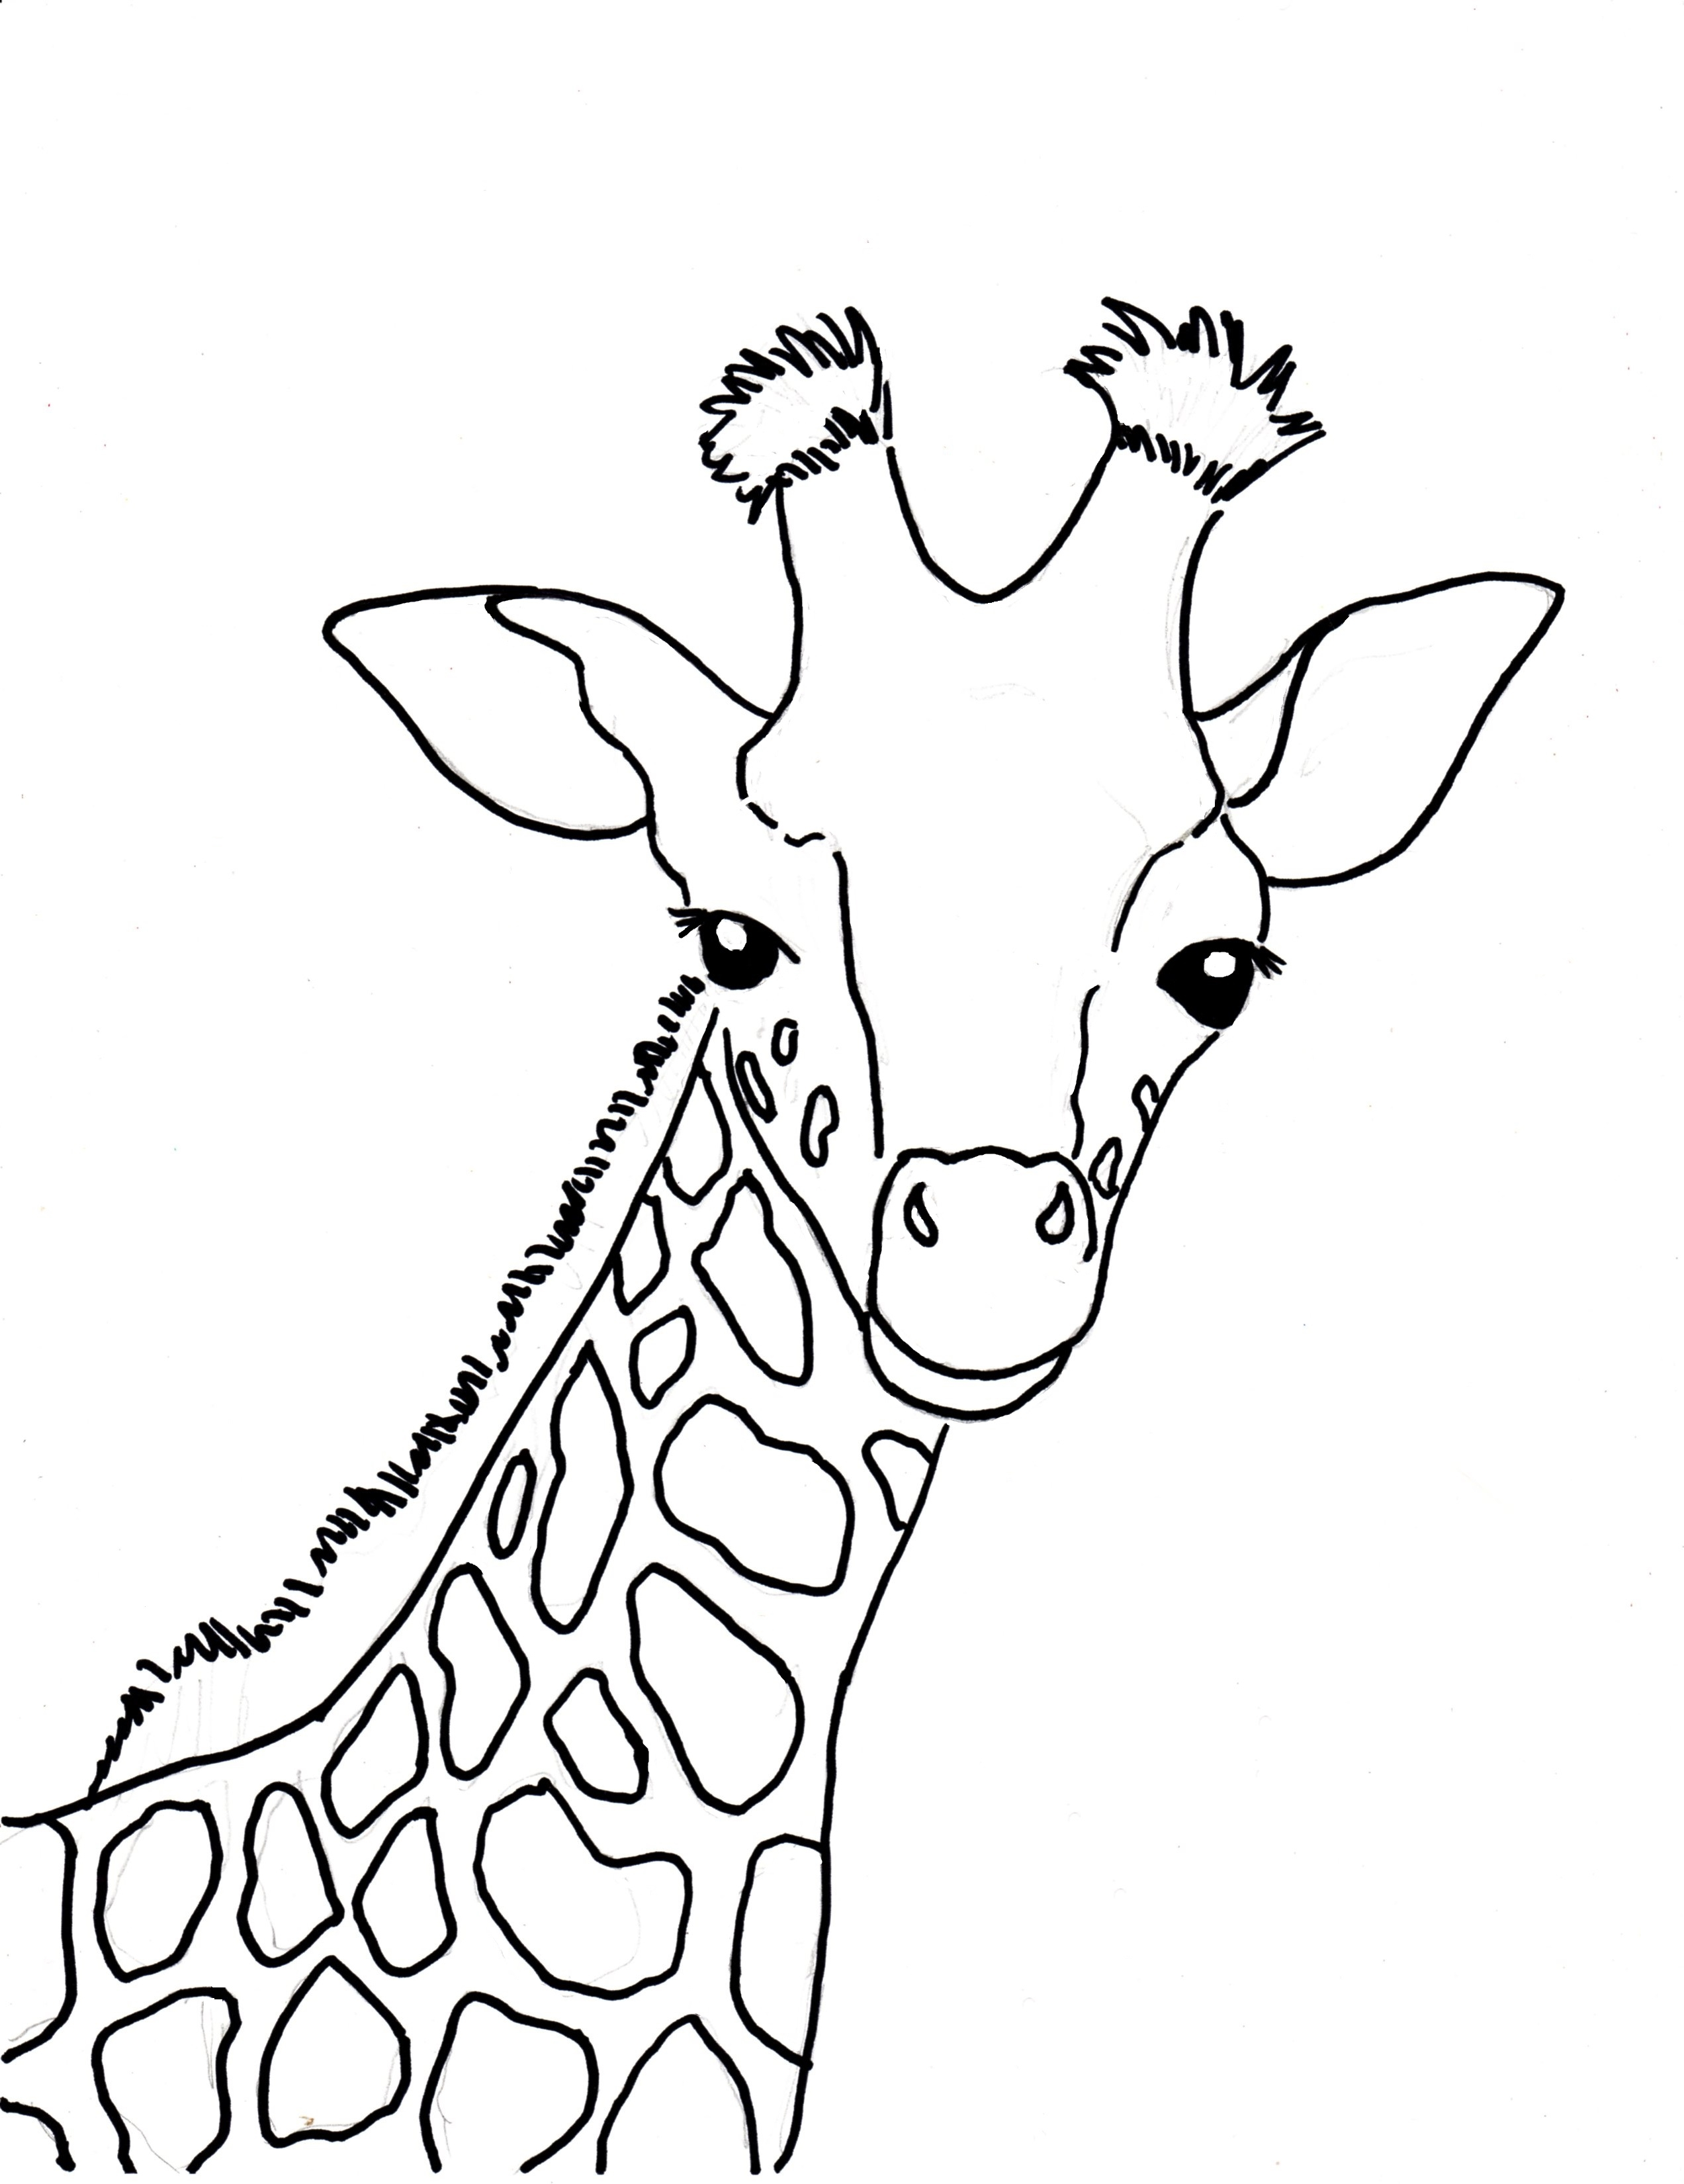 2545x3300 Giraffe Head Coloring Pages Printable Coloring For Kids